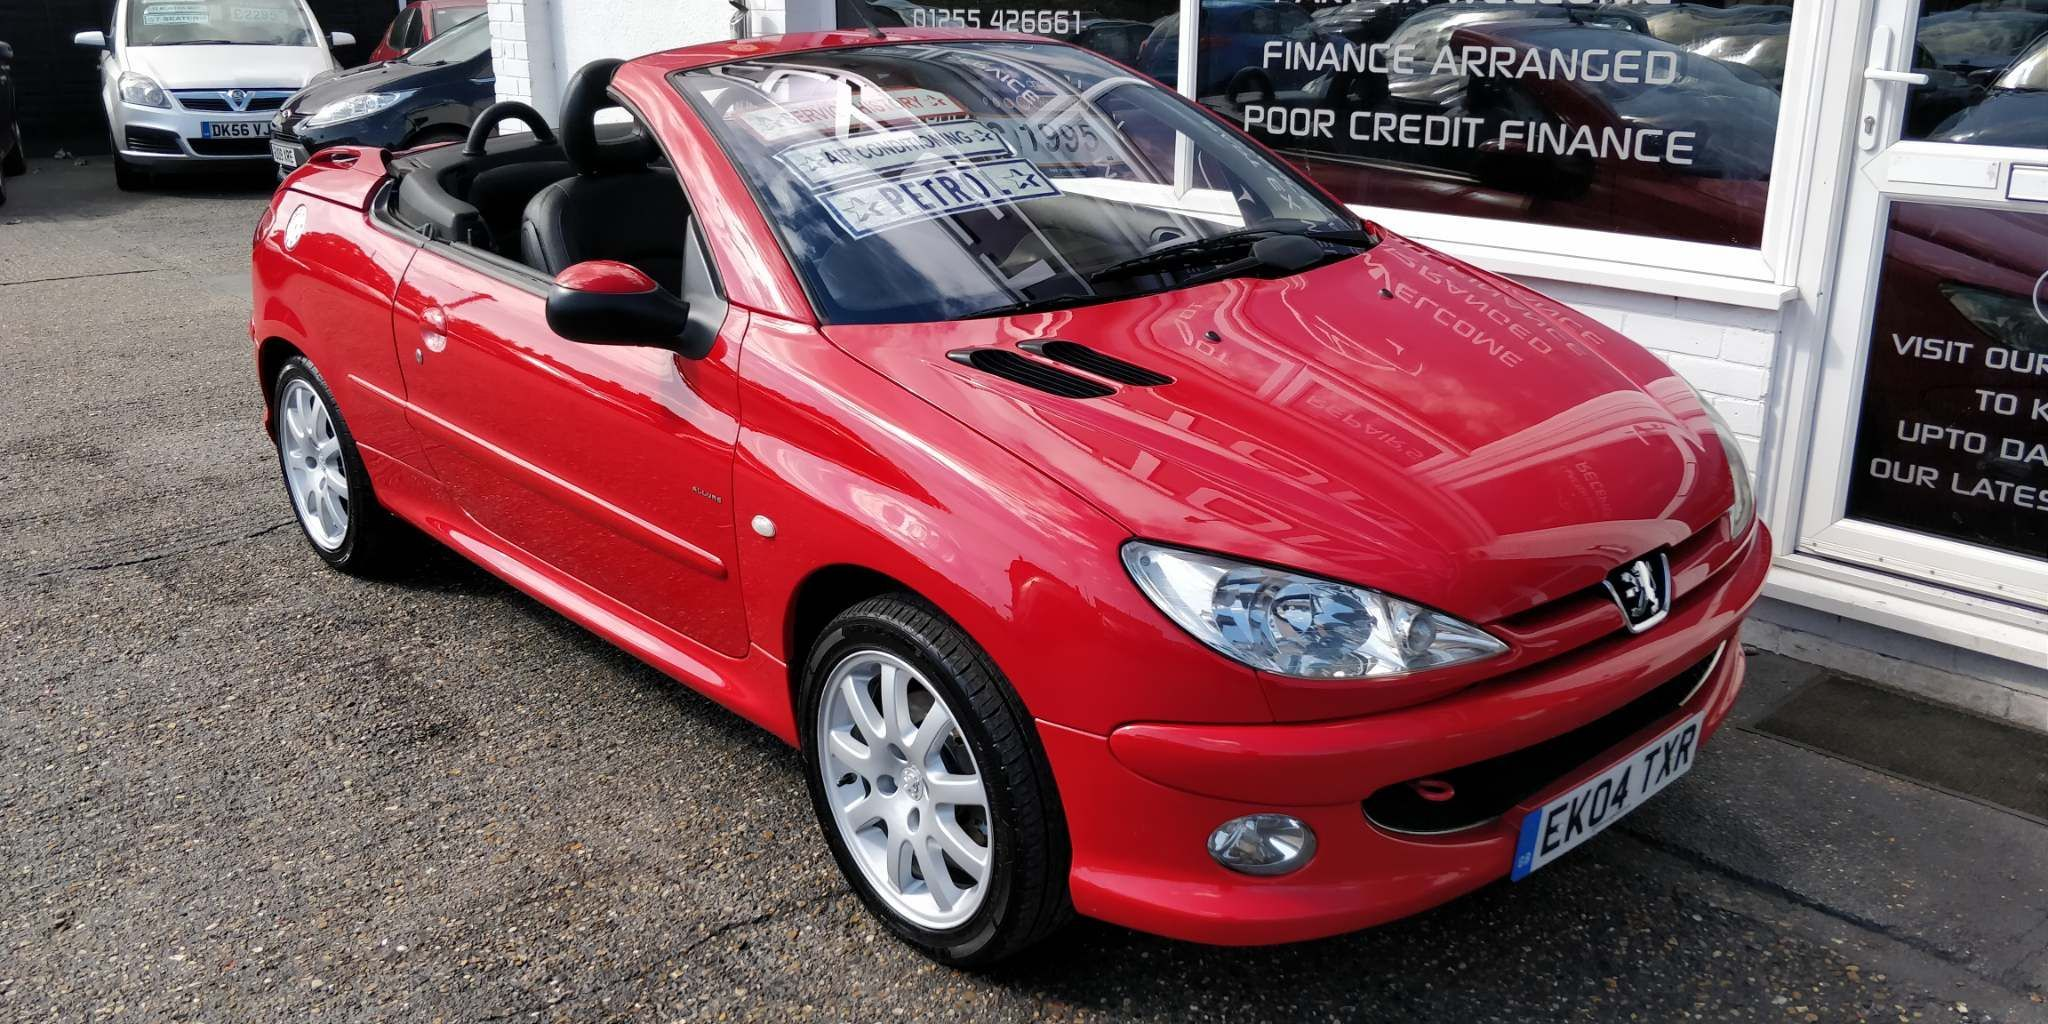 Red Peugeot 206 Cc Used Cars For Sale Autotrader Uk